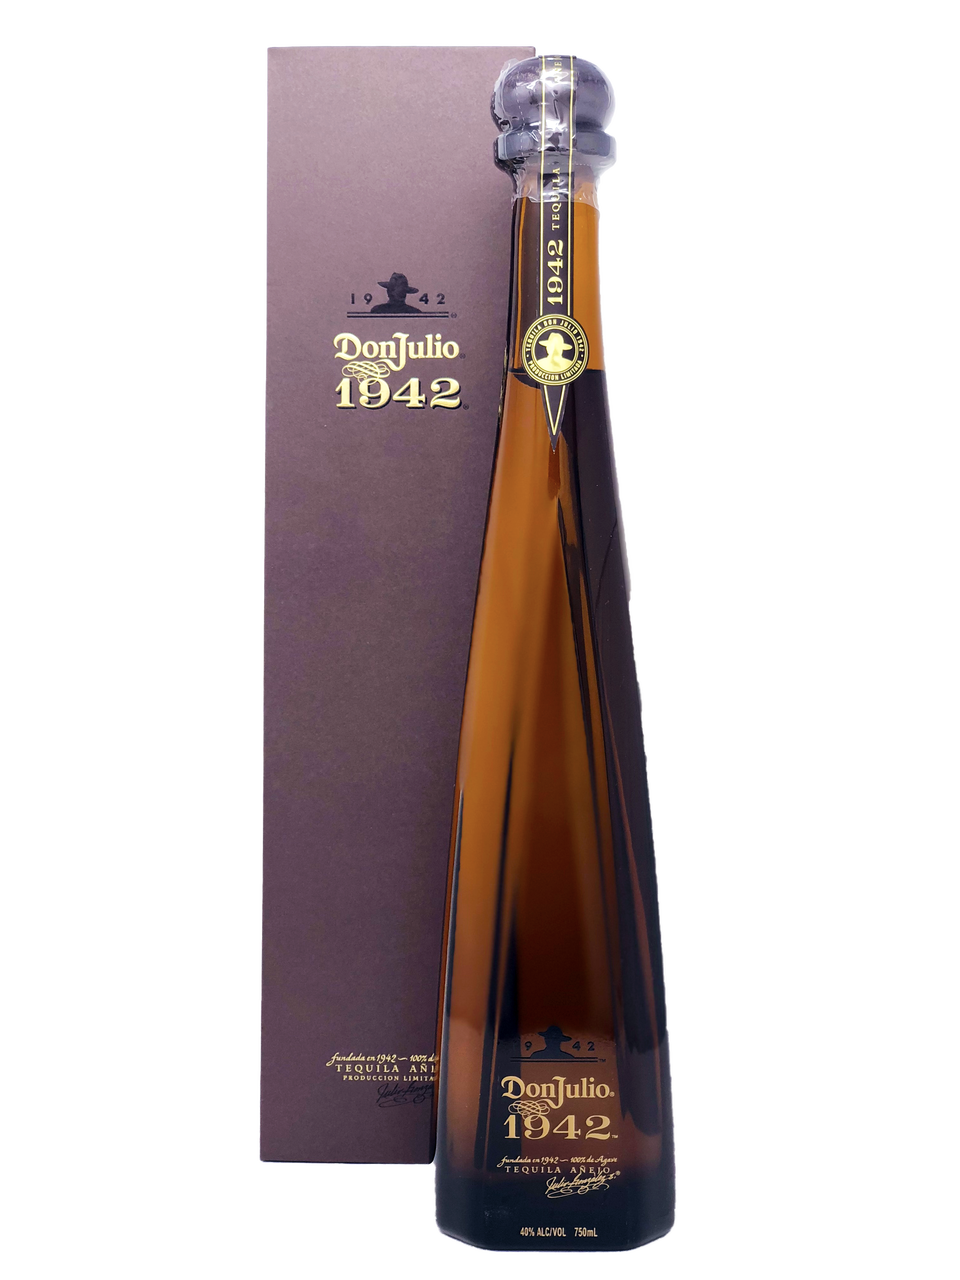 Don Julio Anejo 1942 750ml Old Town Tequila